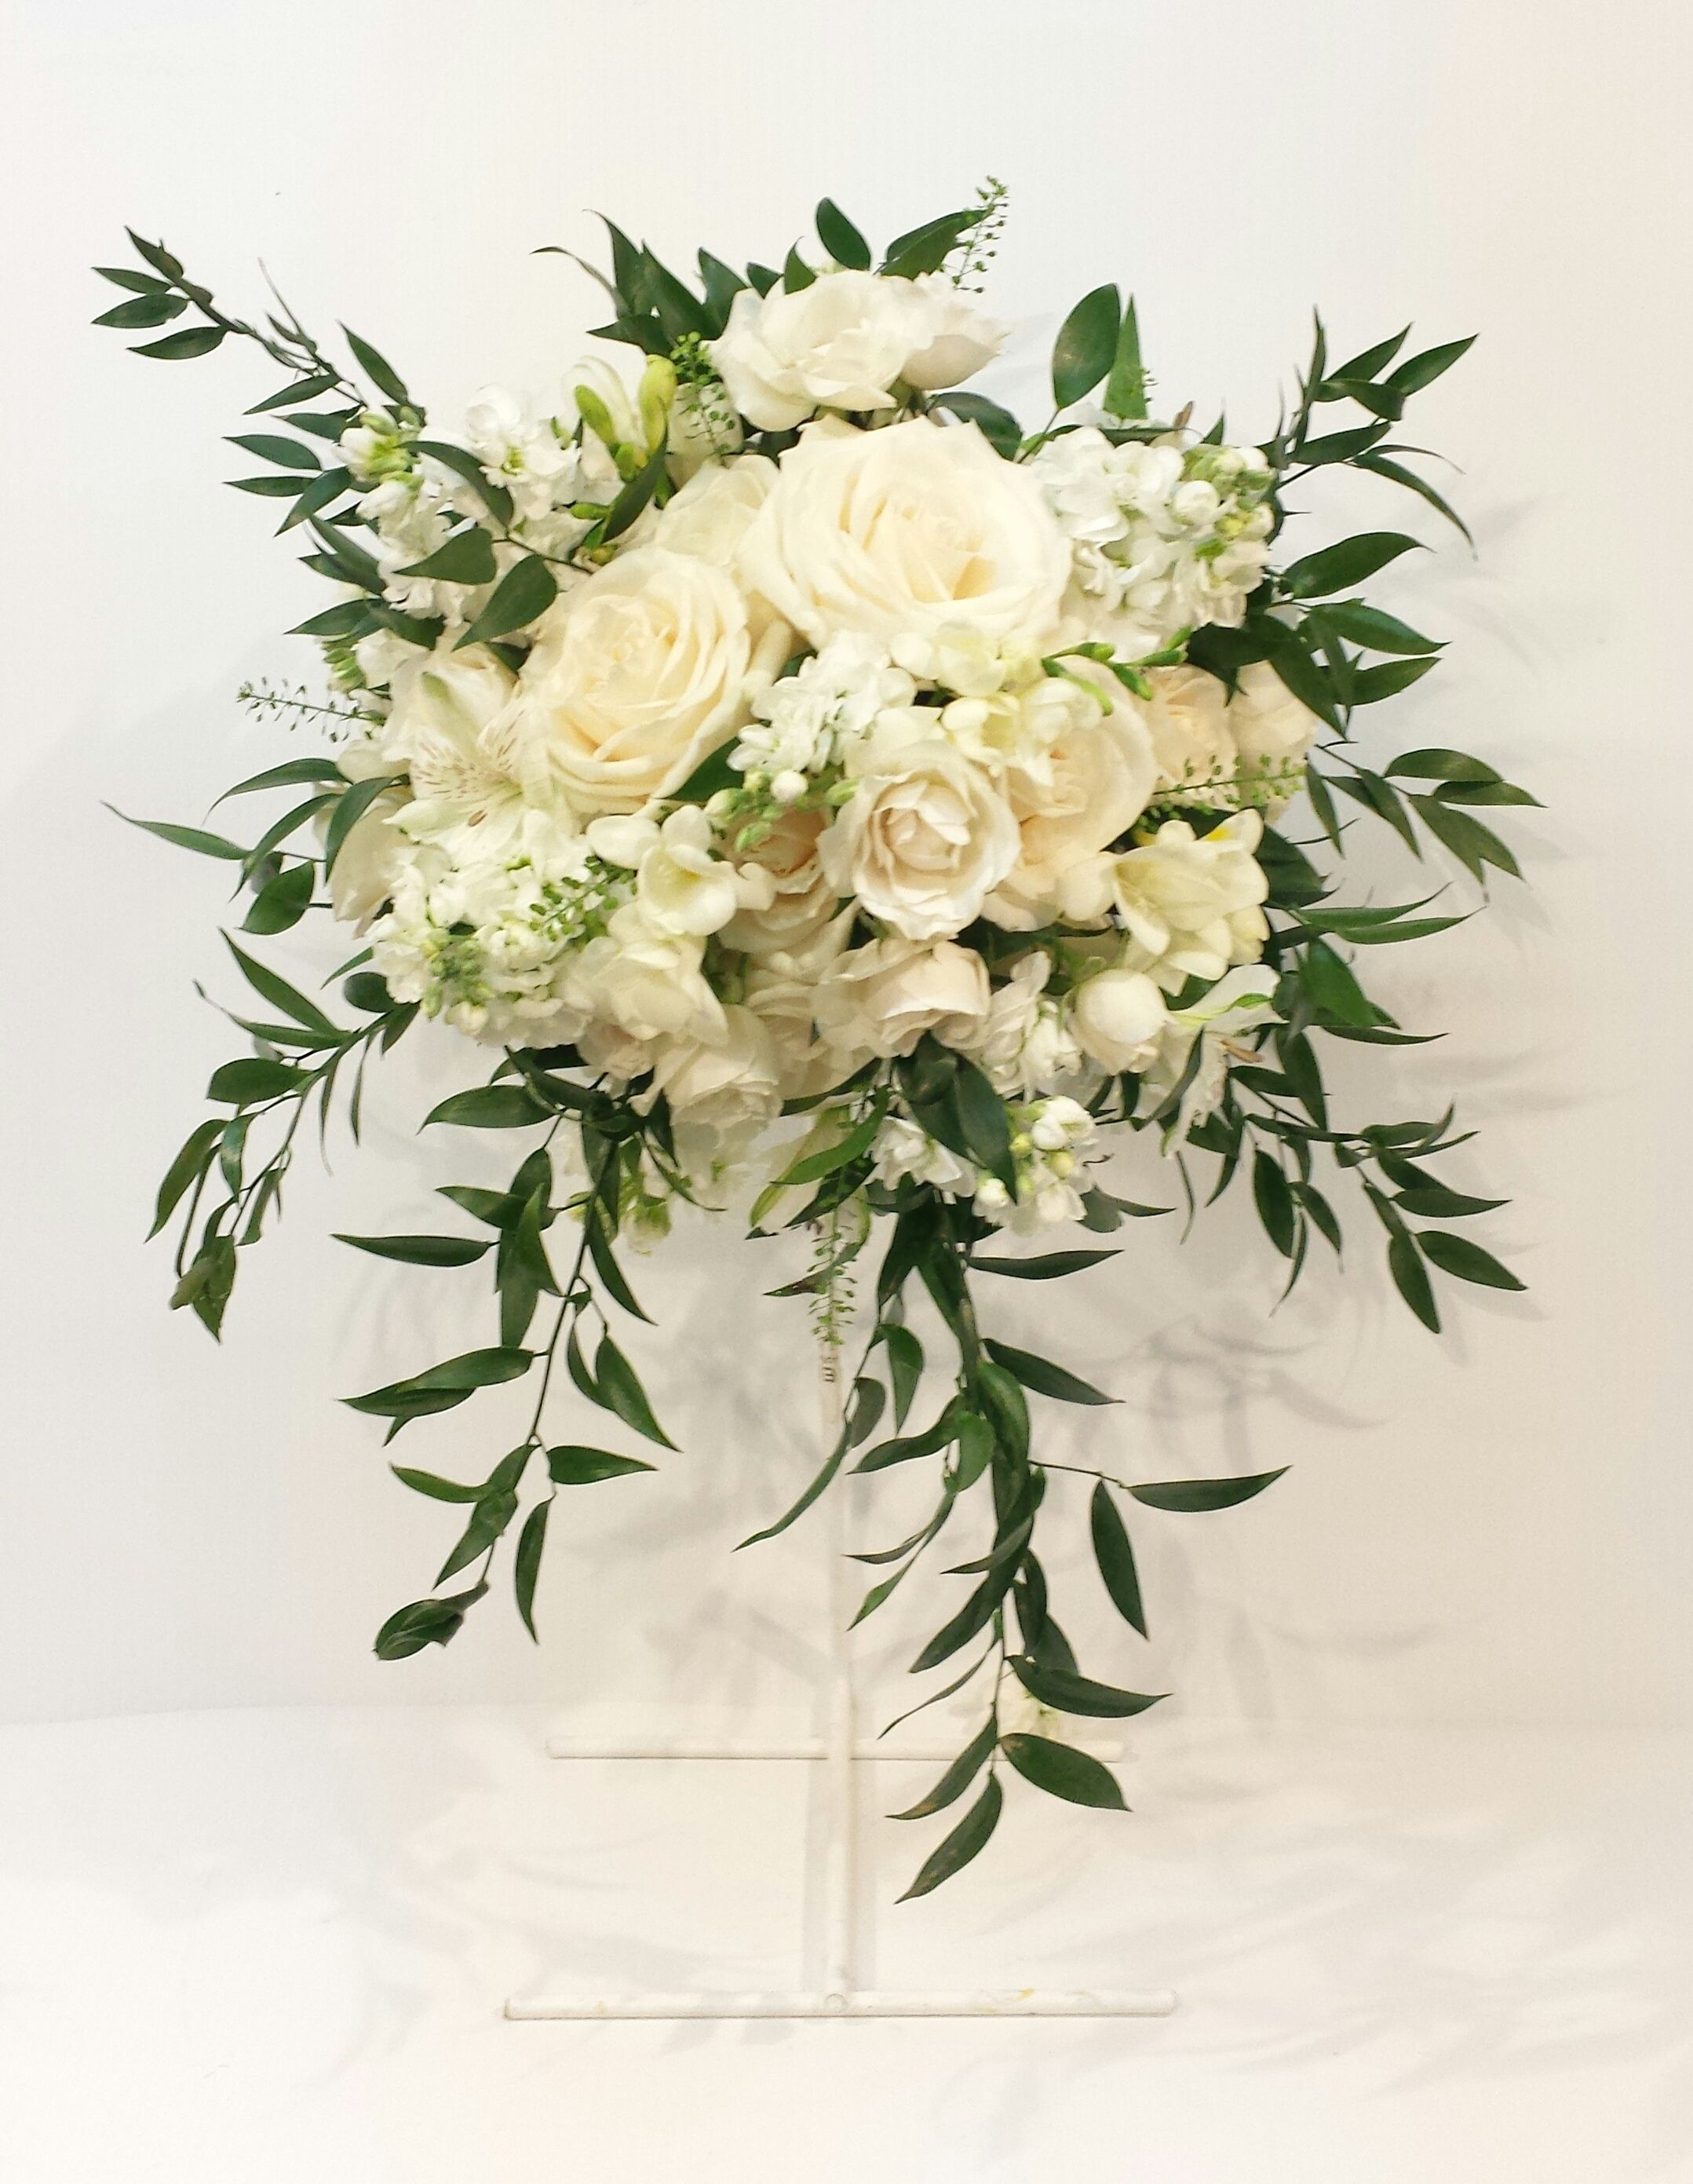 Calgary wedding flowers florist real inspiration cream ivory white calgary wedding flowers florist real inspiration cream ivory white champagne green bridal party bouquets dahlia floral design mightylinksfo